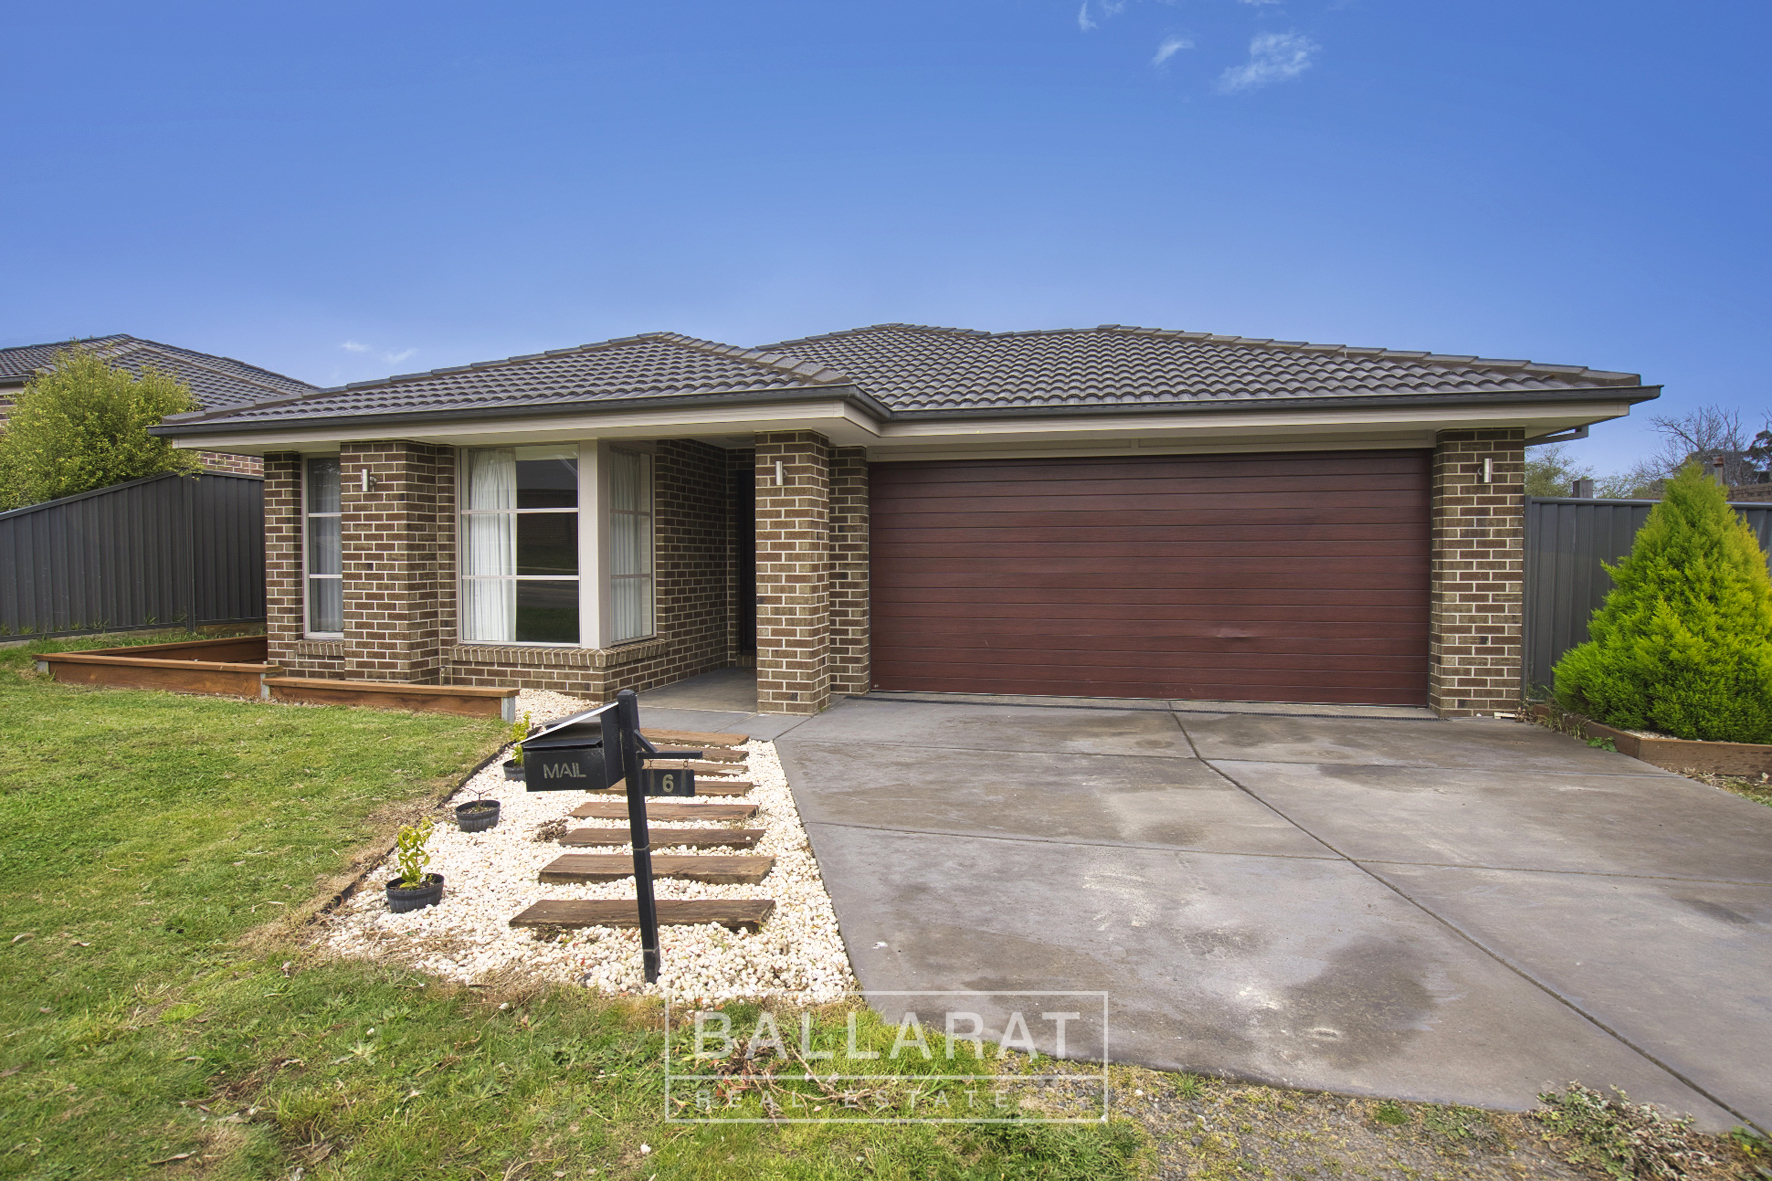 6 Hains Close Beaufort